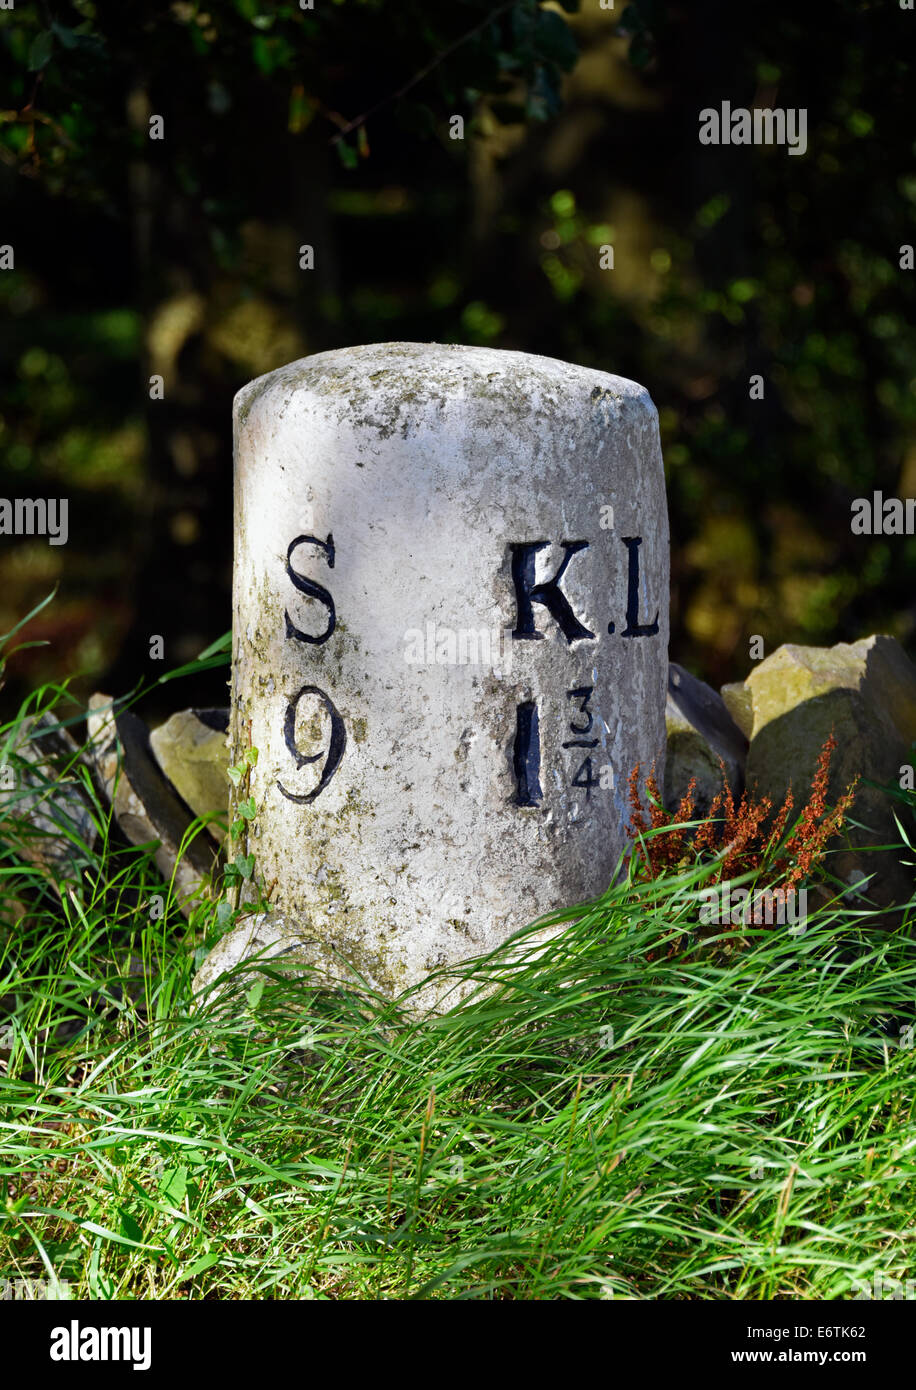 Milestone at Casterton between Sedbergh and Kirkby Lonsdale. Cumbria, England, United Kingdom, Europe. - Stock Image